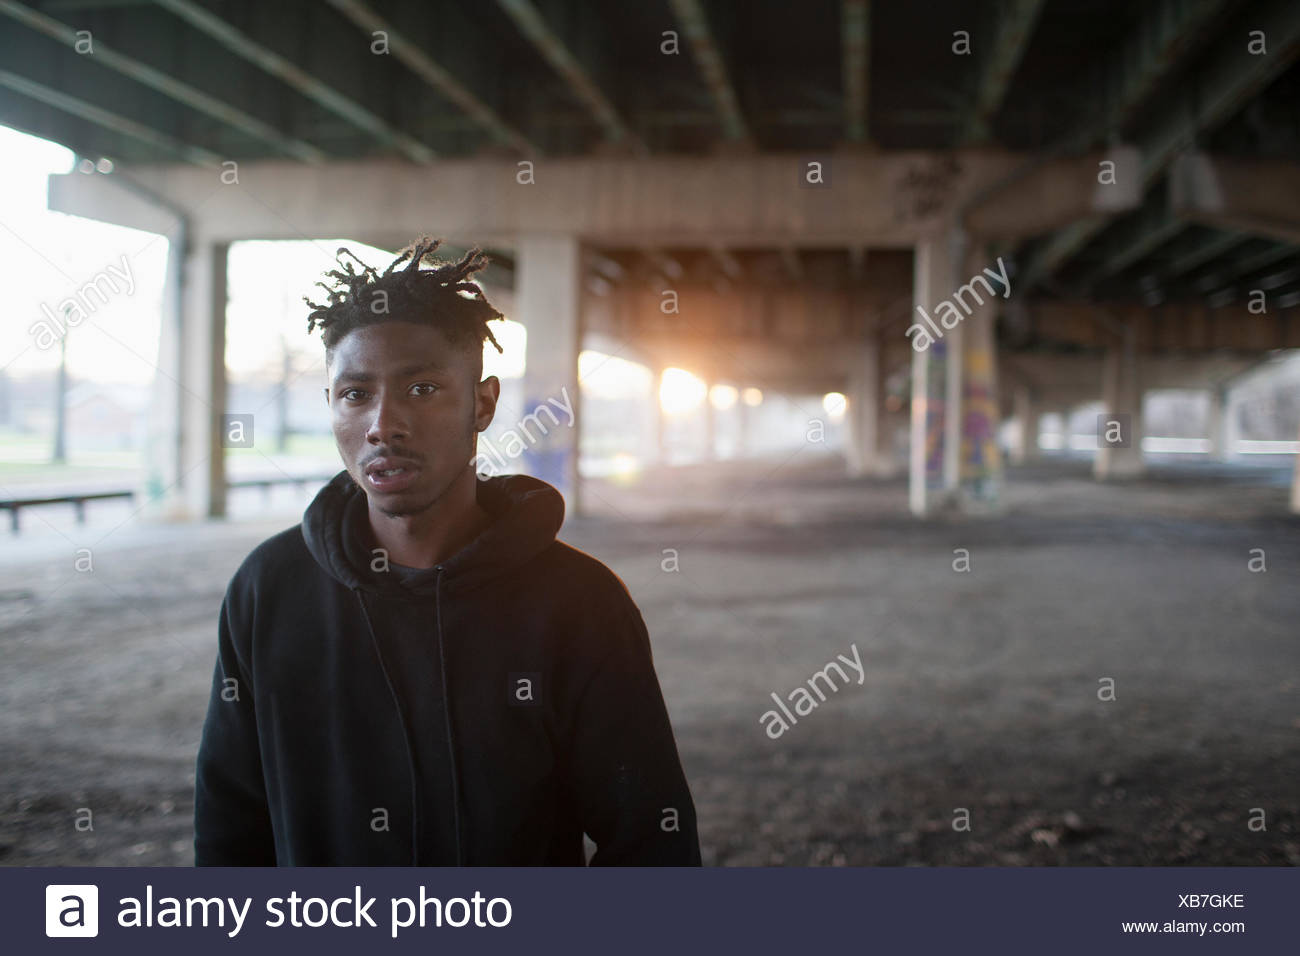 Portrait of a young man. - Stock Image